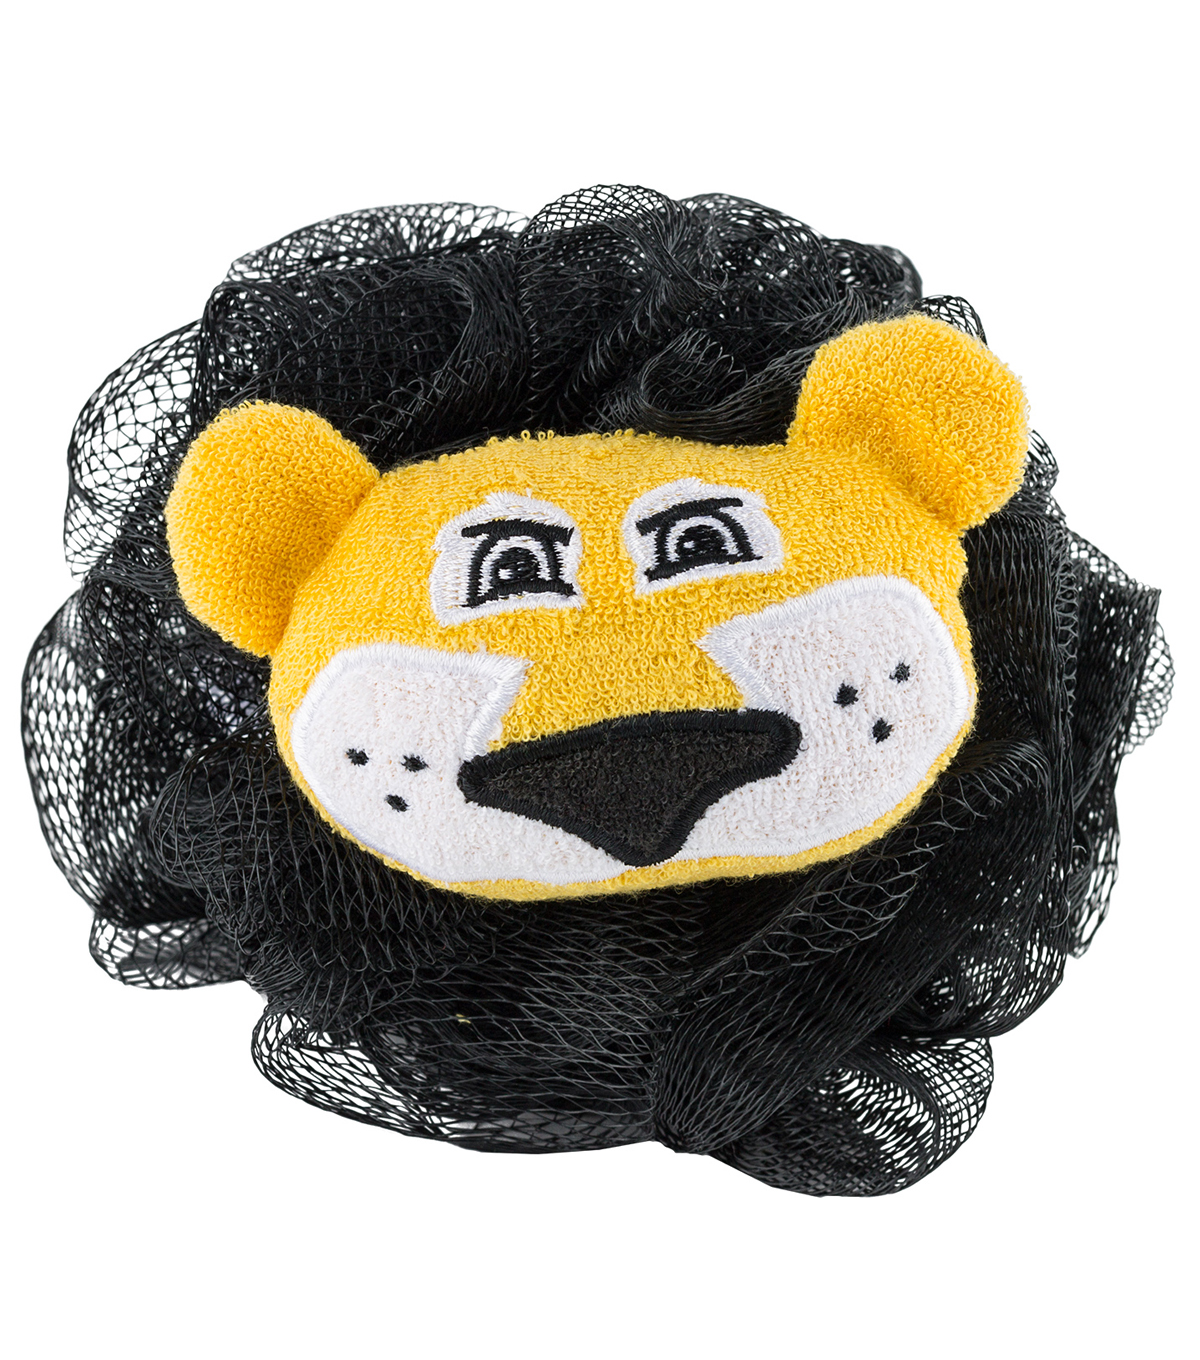 University of Missouri Mascot Loofah